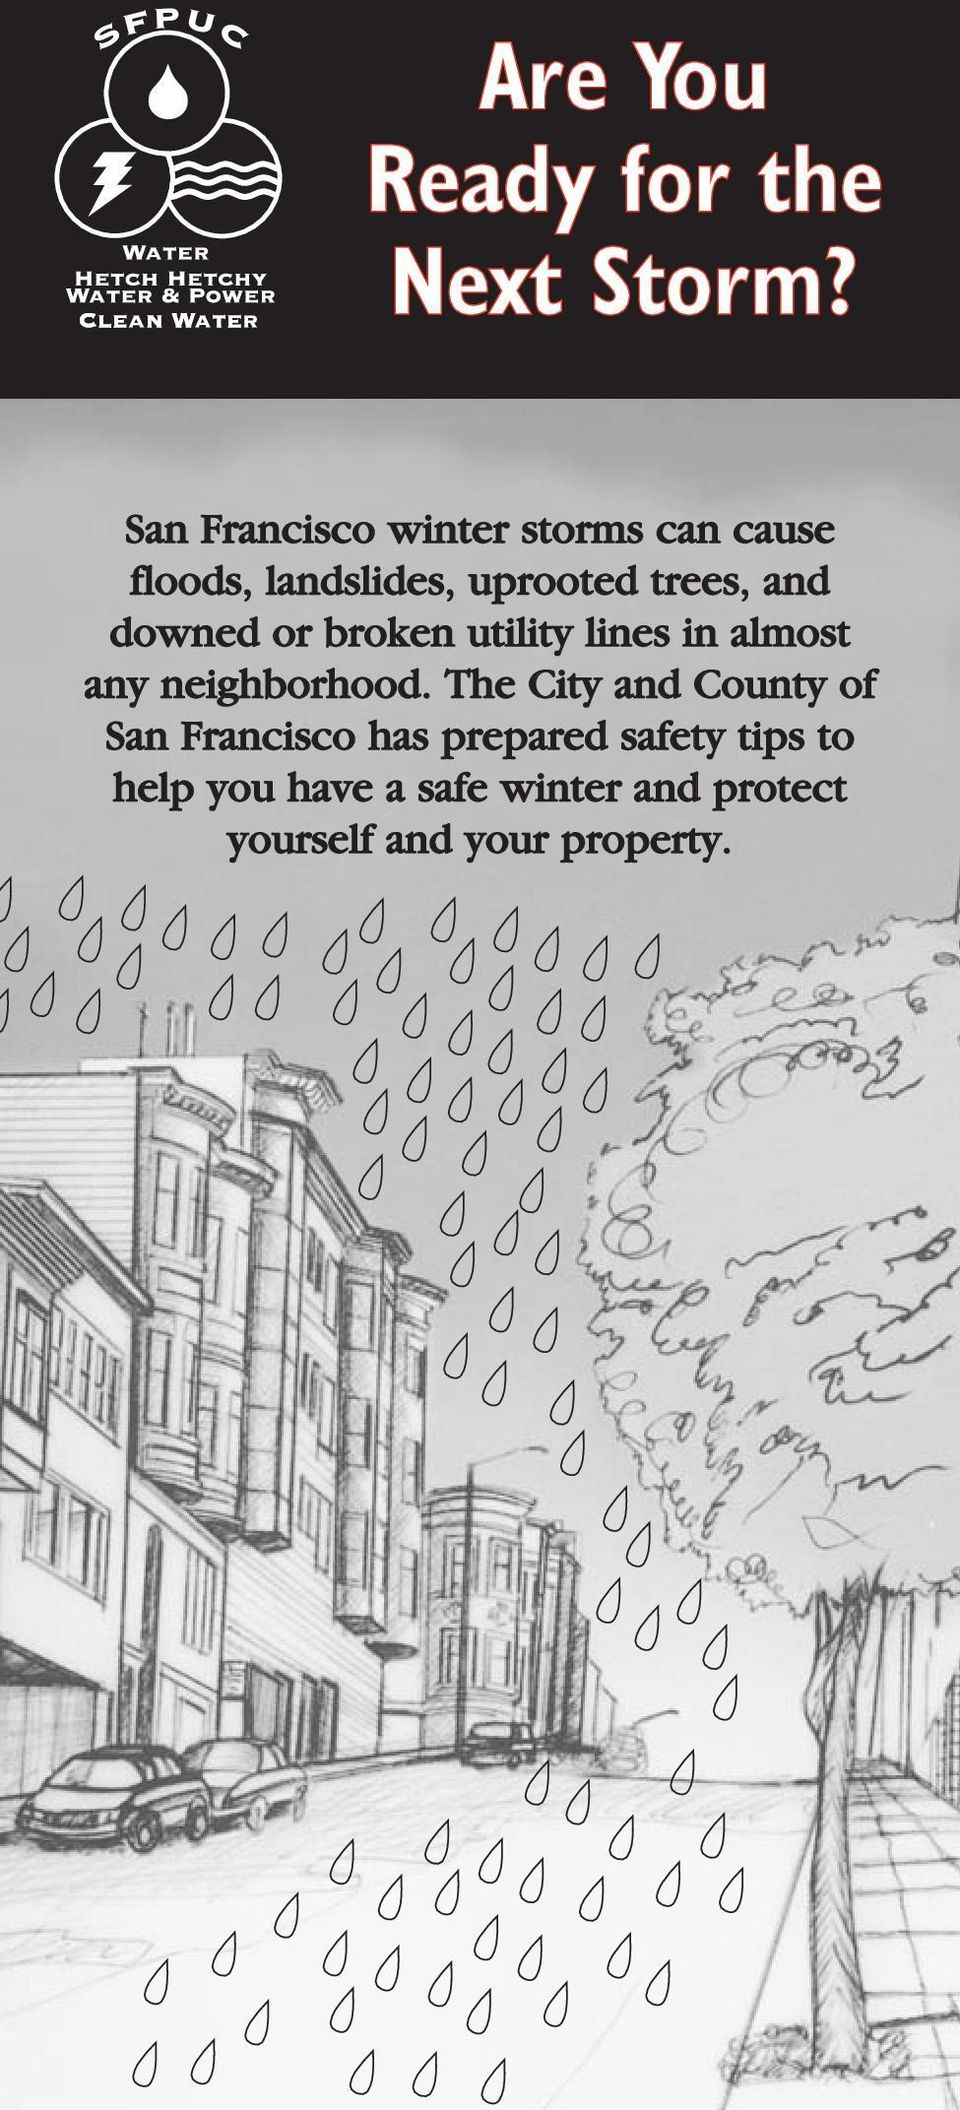 and downed or broken utility lines in almost any neighborhood.